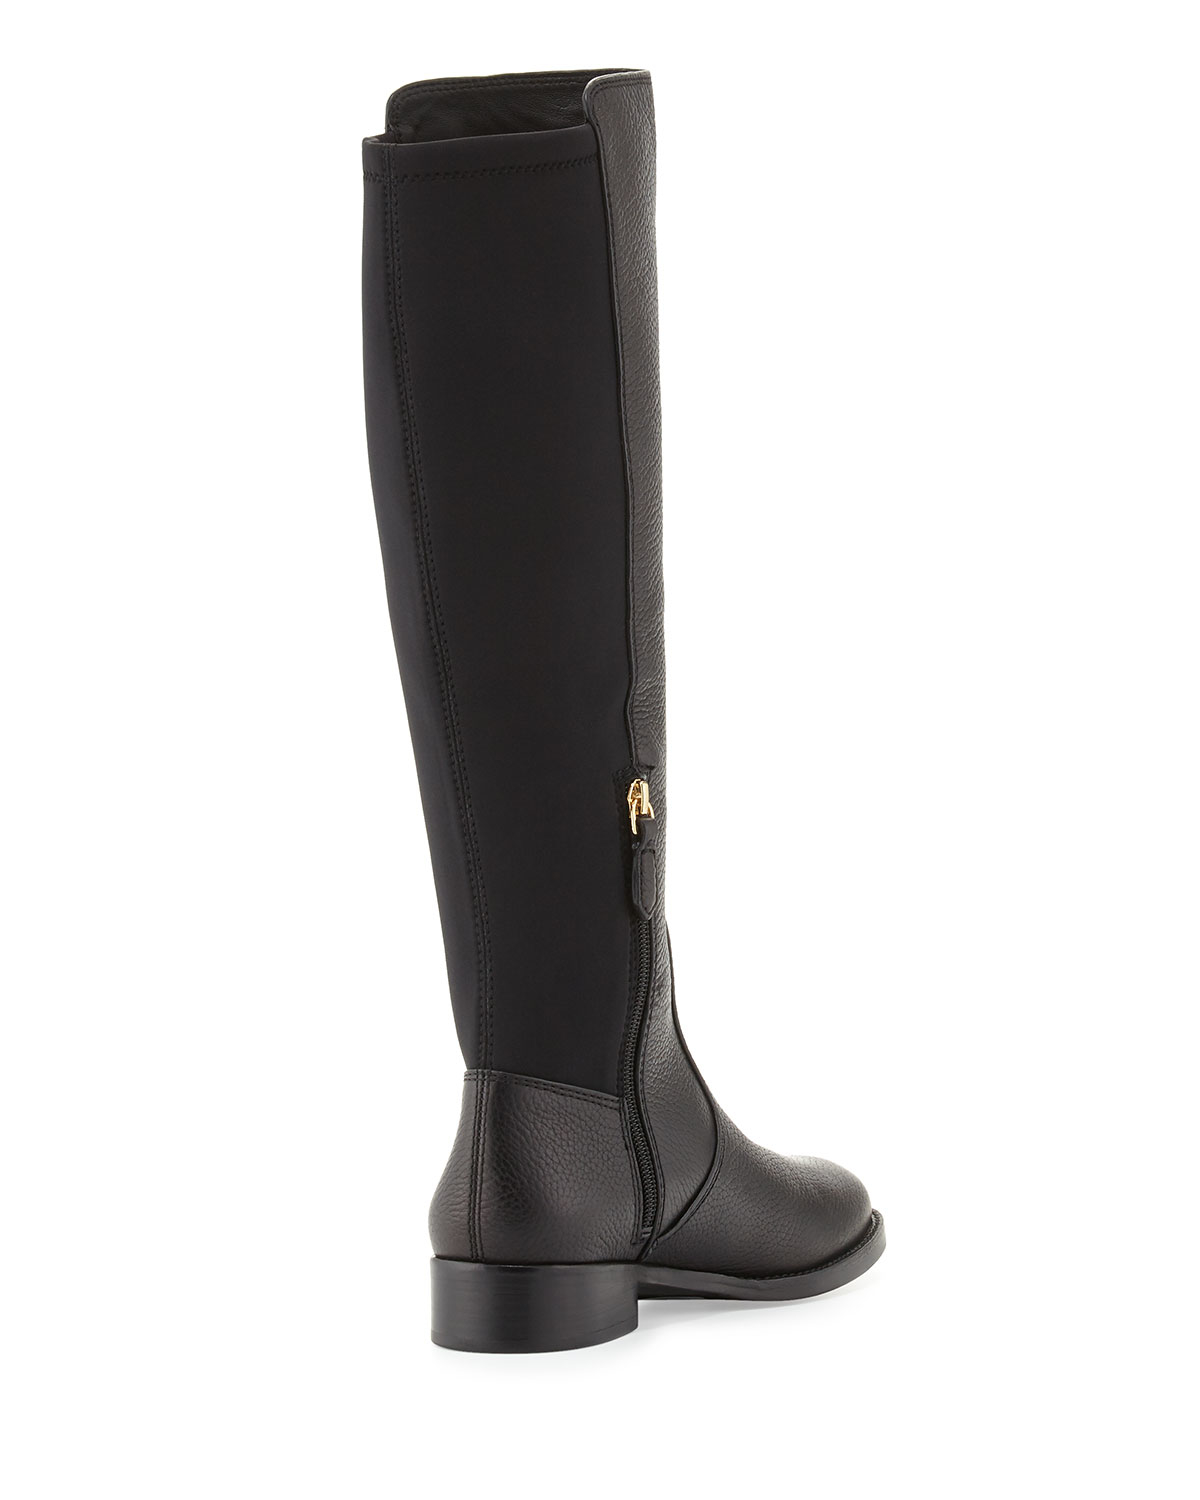 e3935b807bf9 Lyst - Tory Burch Selden Pebbled-Leather Riding Boots in Black